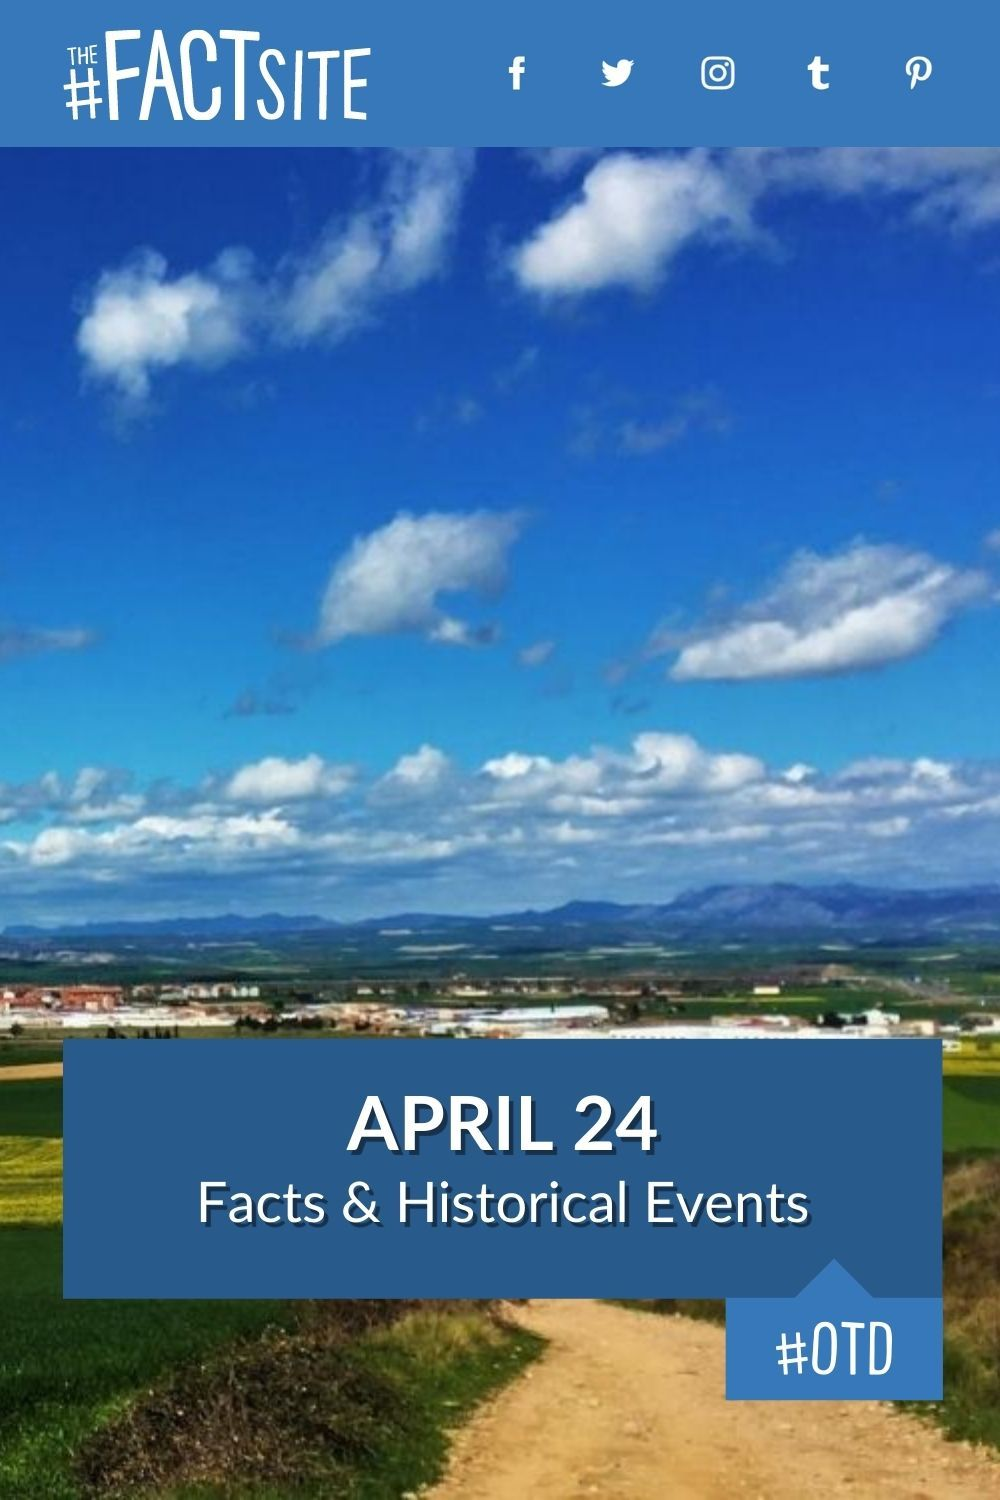 Facts & Historic Events That Happened on April 24